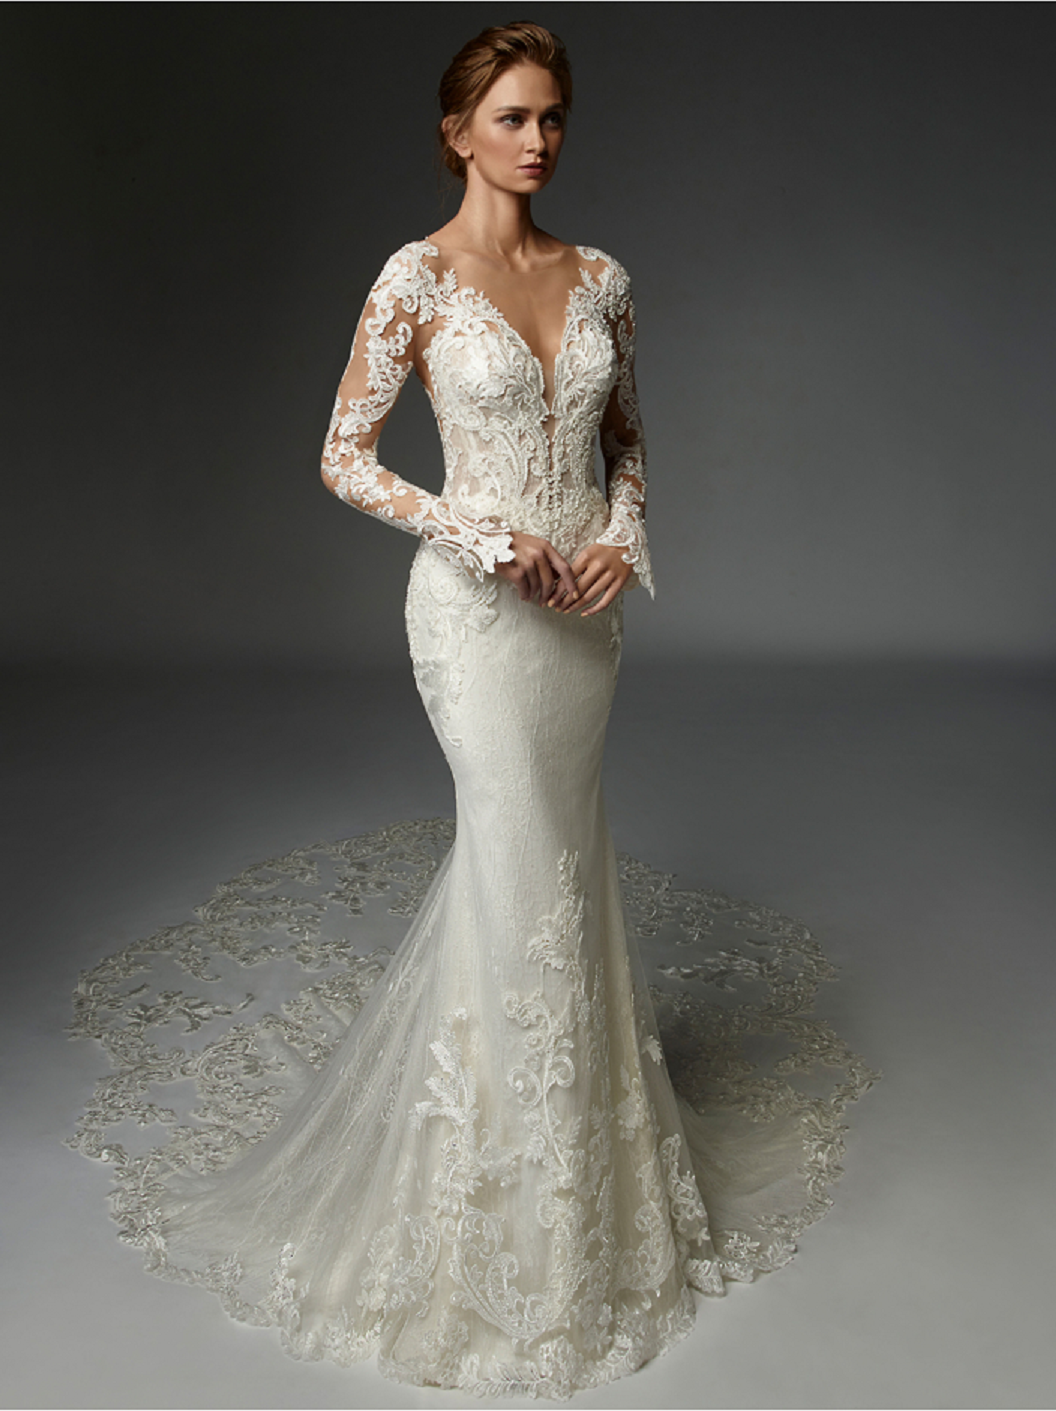 Wedding dress bling Baroque Lace with Thousands Of Hand-Embroidered Beads and Paillettes Bridal Gown